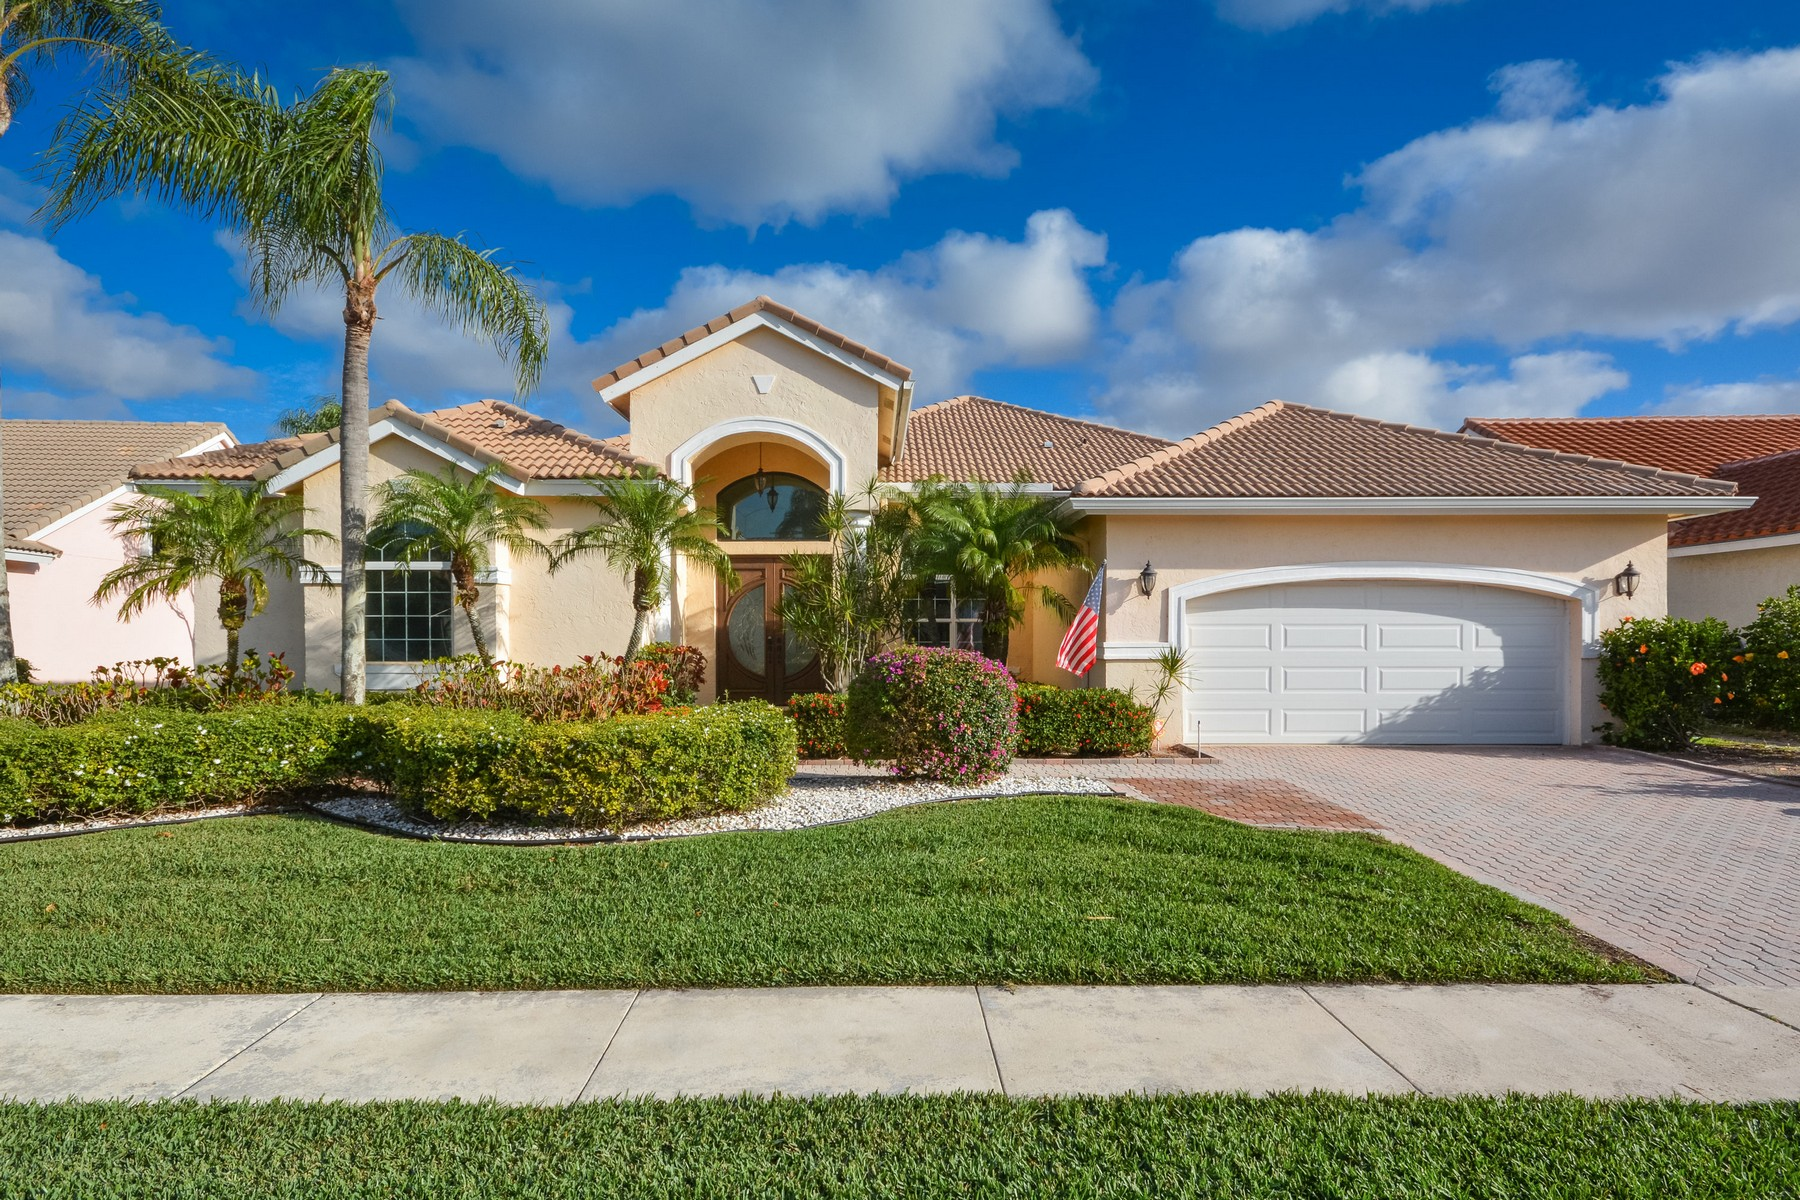 Single Family Home for Sale at 7663 Bridlington Dr , Boynton Beach, FL 33472 7663 Bridlington Dr Boynton Beach, Florida 33472 United States